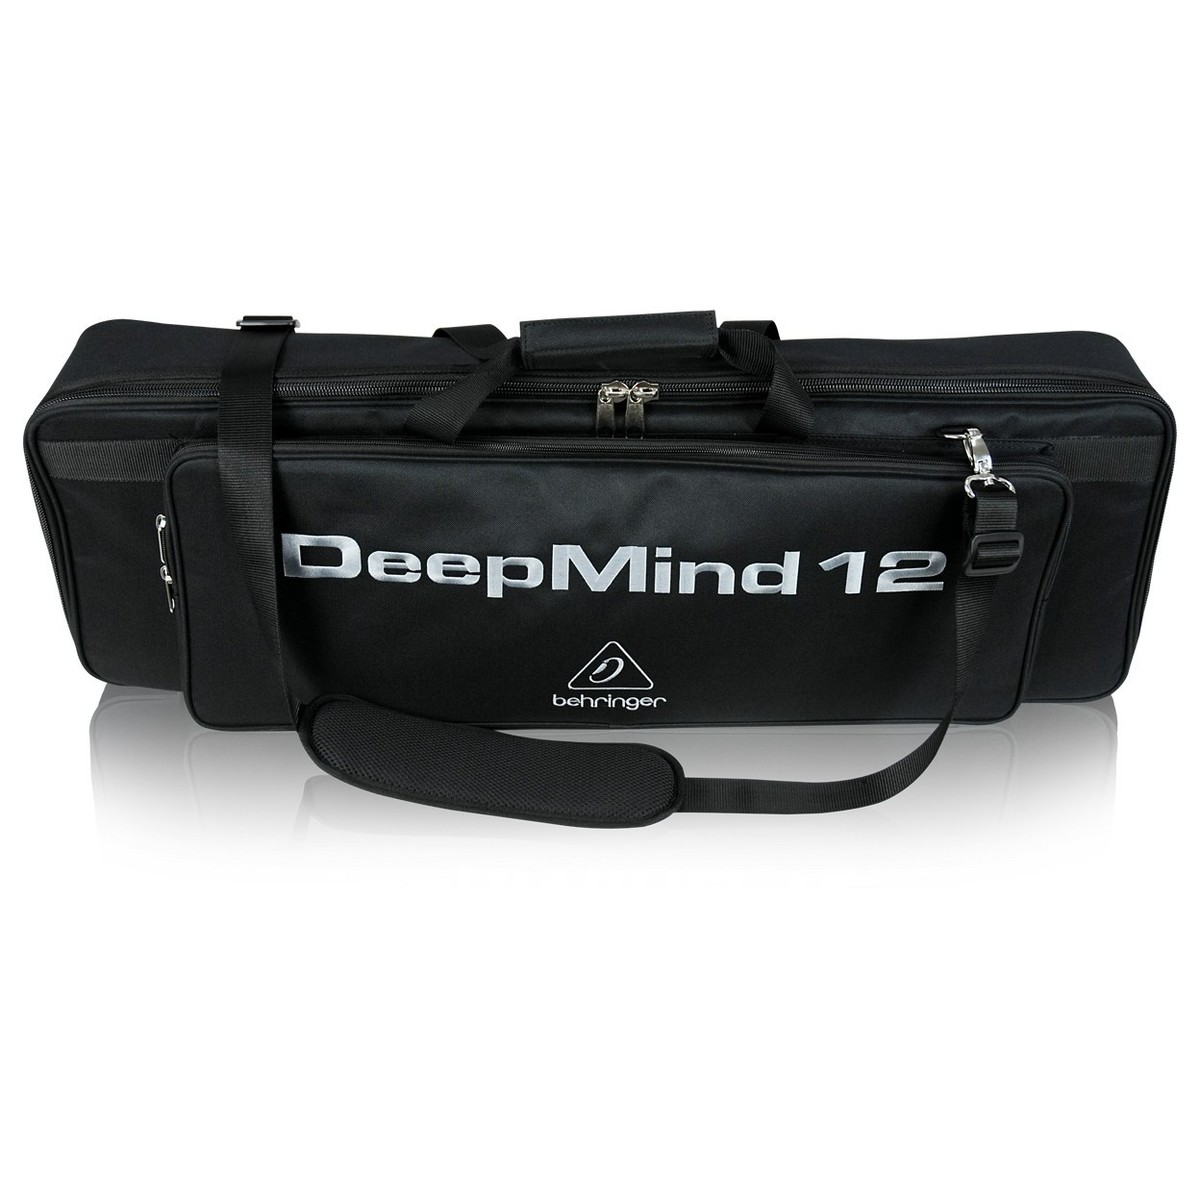 Box Wasserdicht Behringer Deepmind 12 Waterproof Bag Box Opened